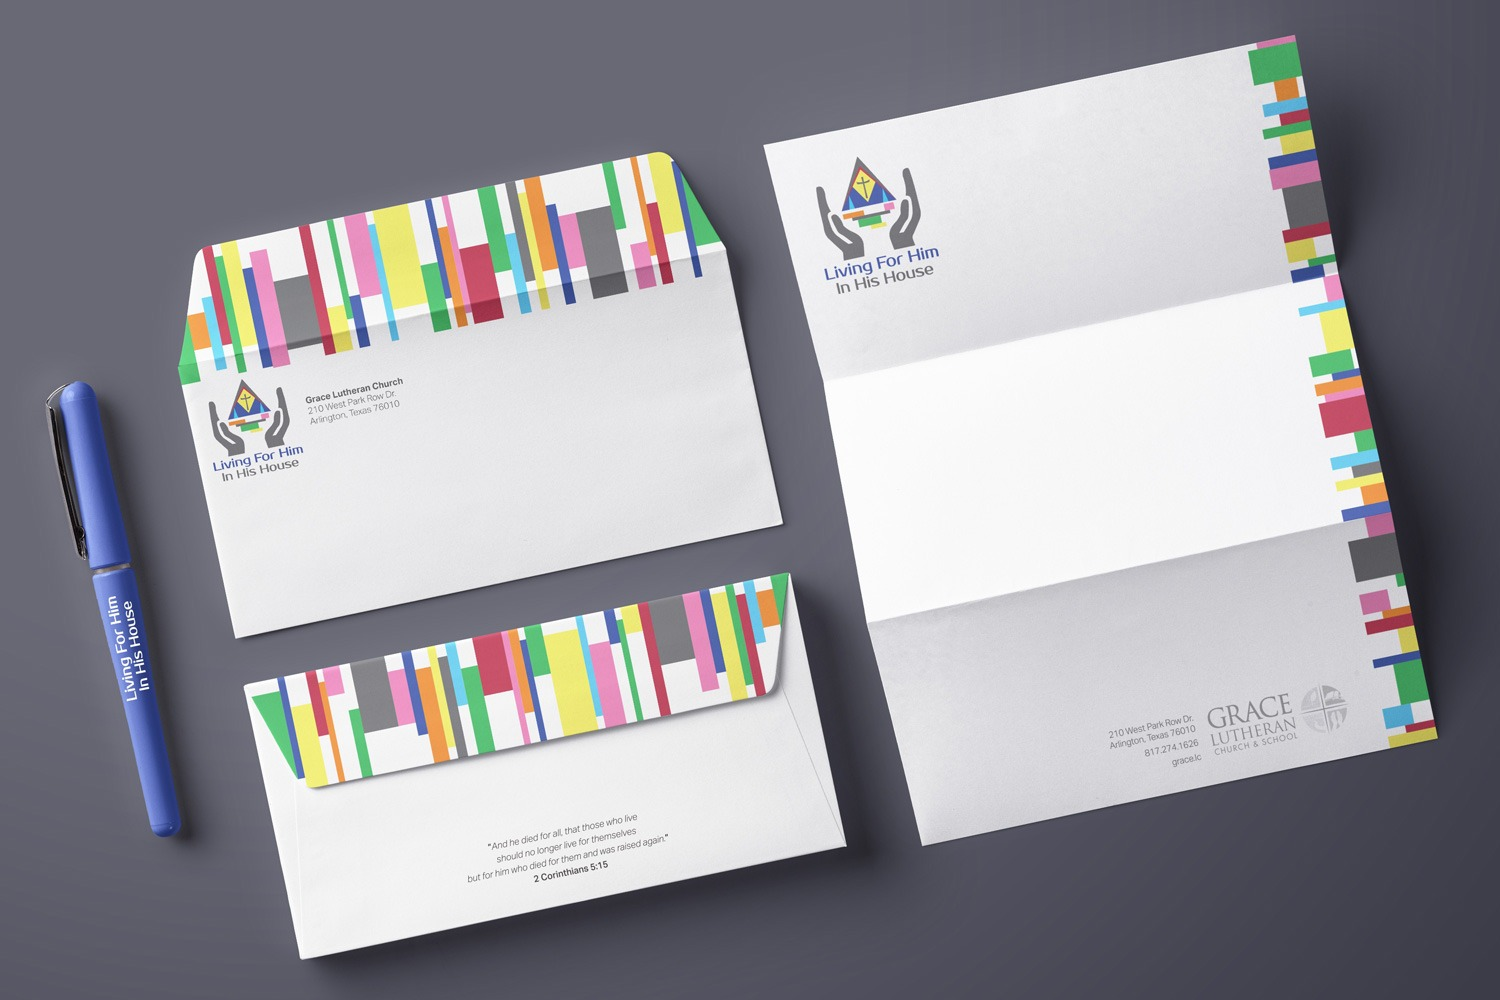 Letterhead & Envelopes idea for Church Marketing & Outreach Materials